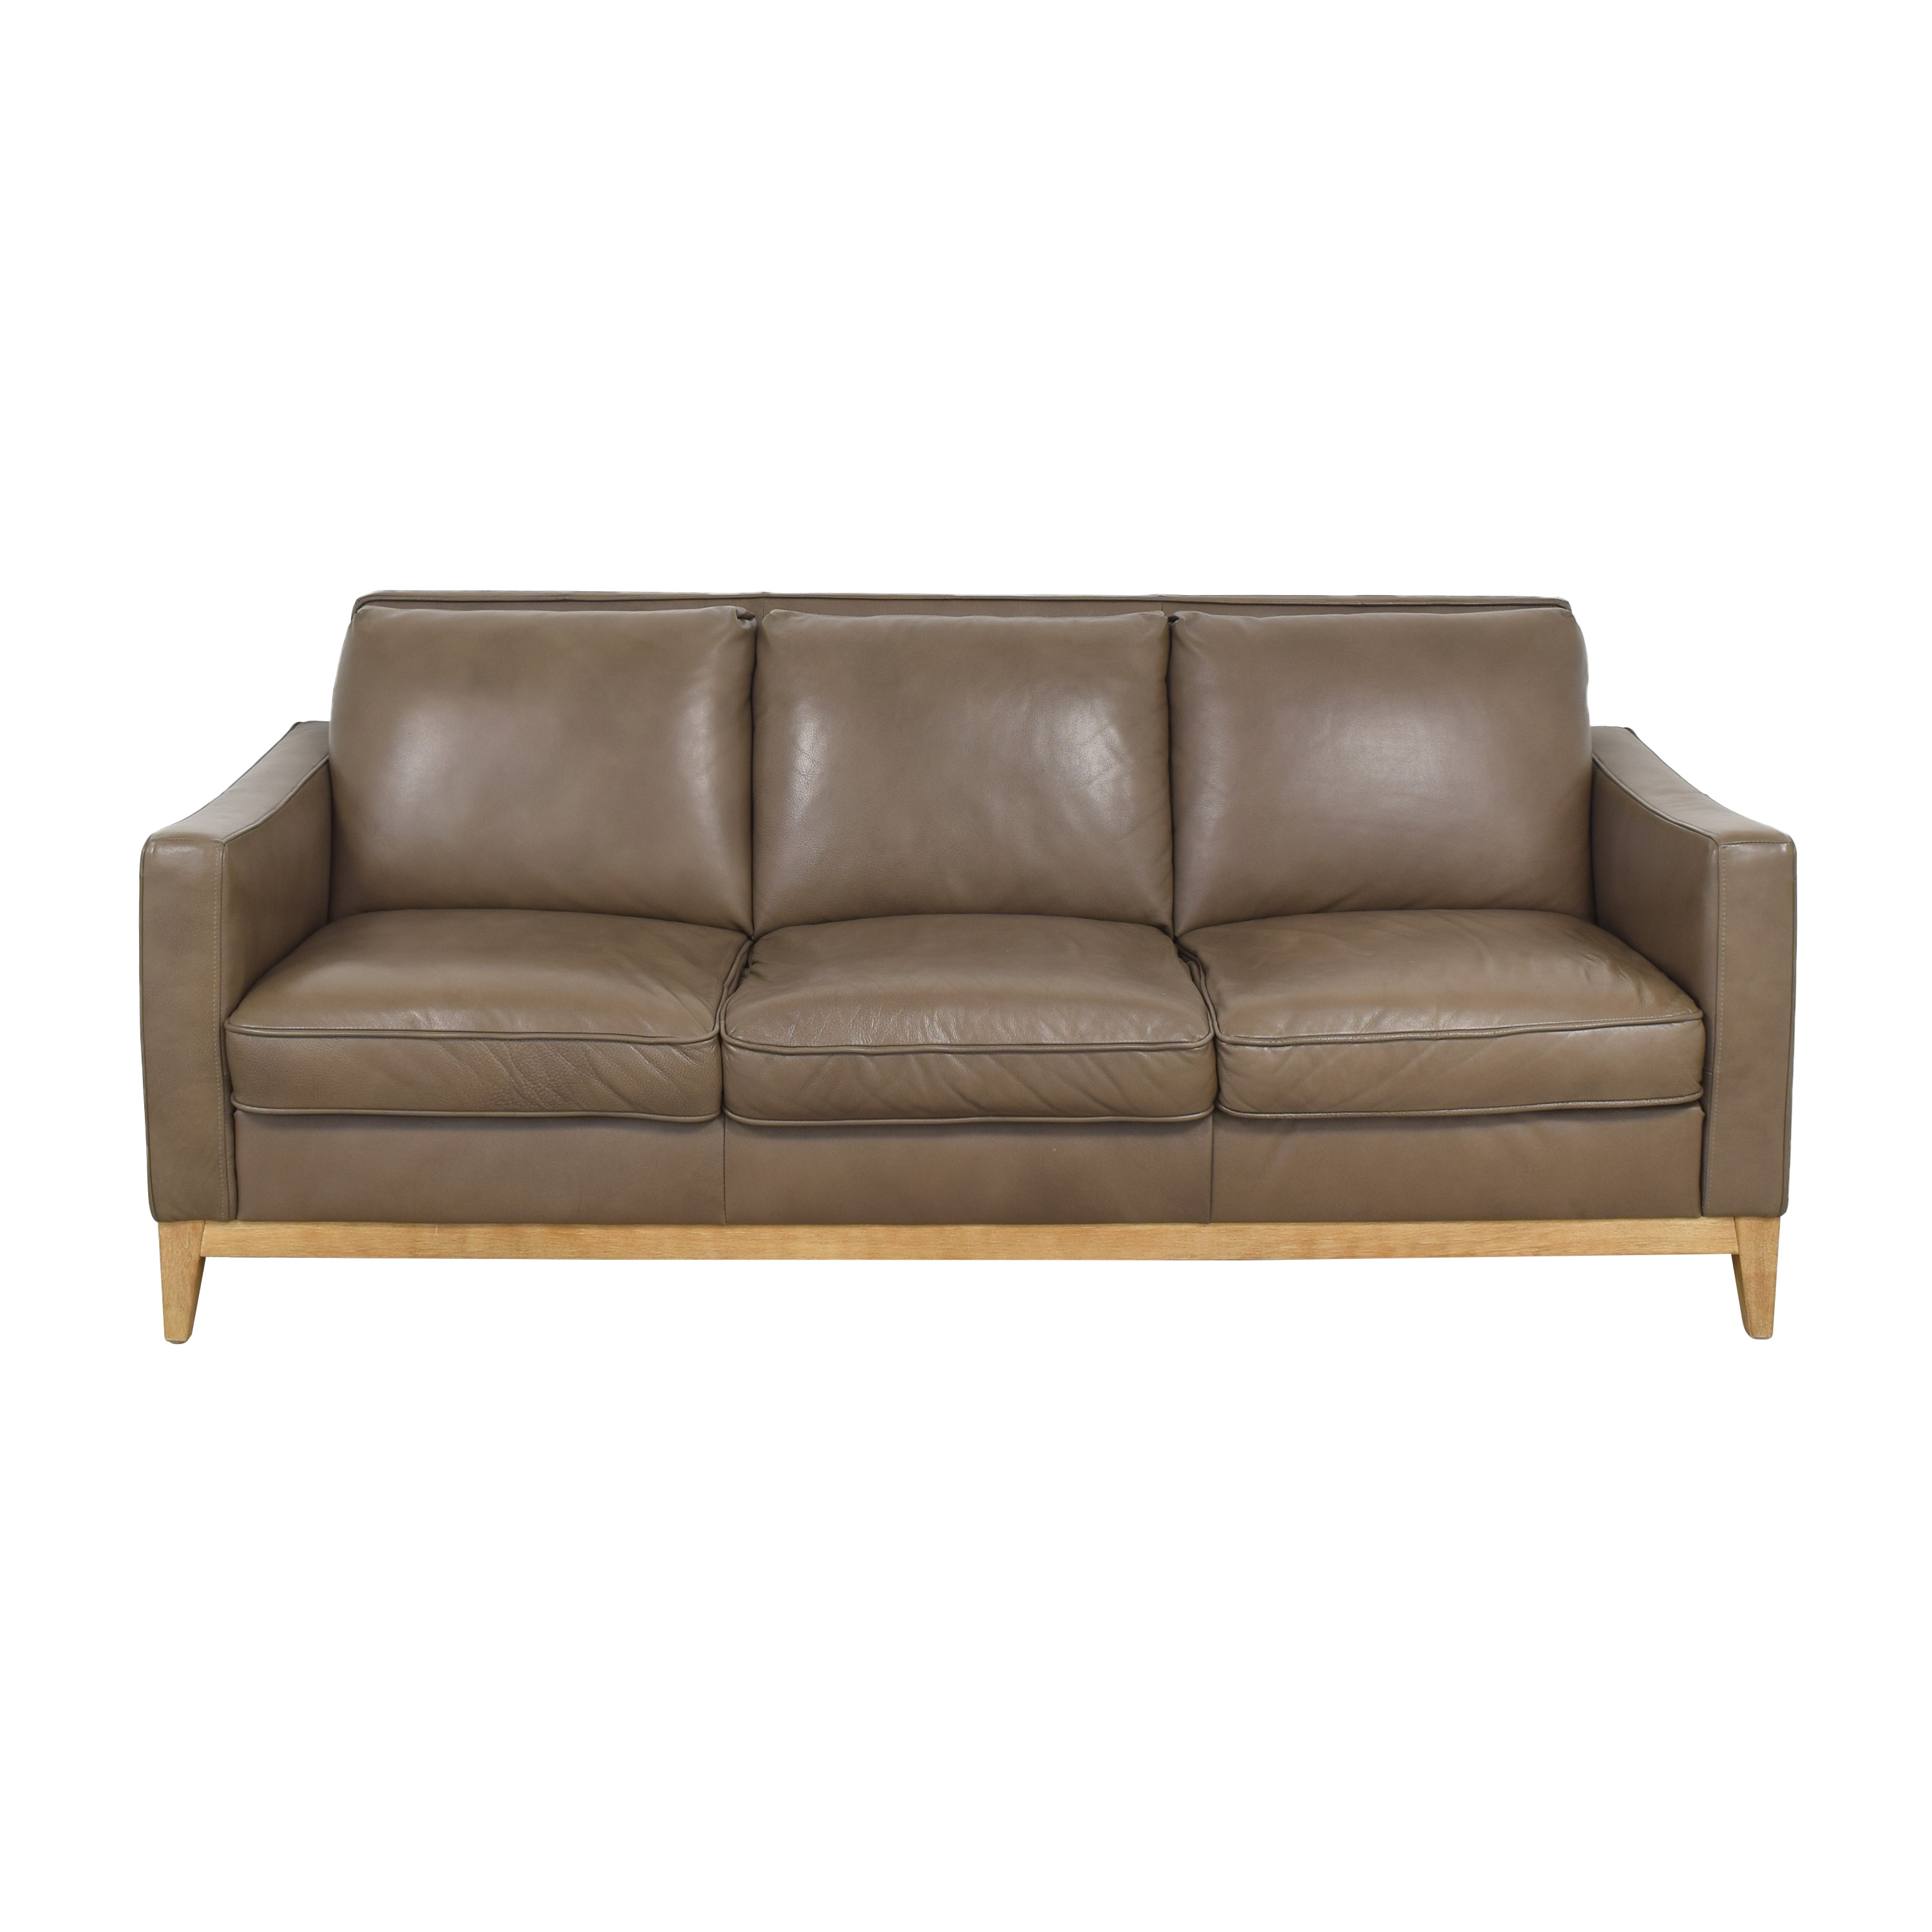 Raymour & Flanigan Three Cushion Sofa Raymour & Flanigan